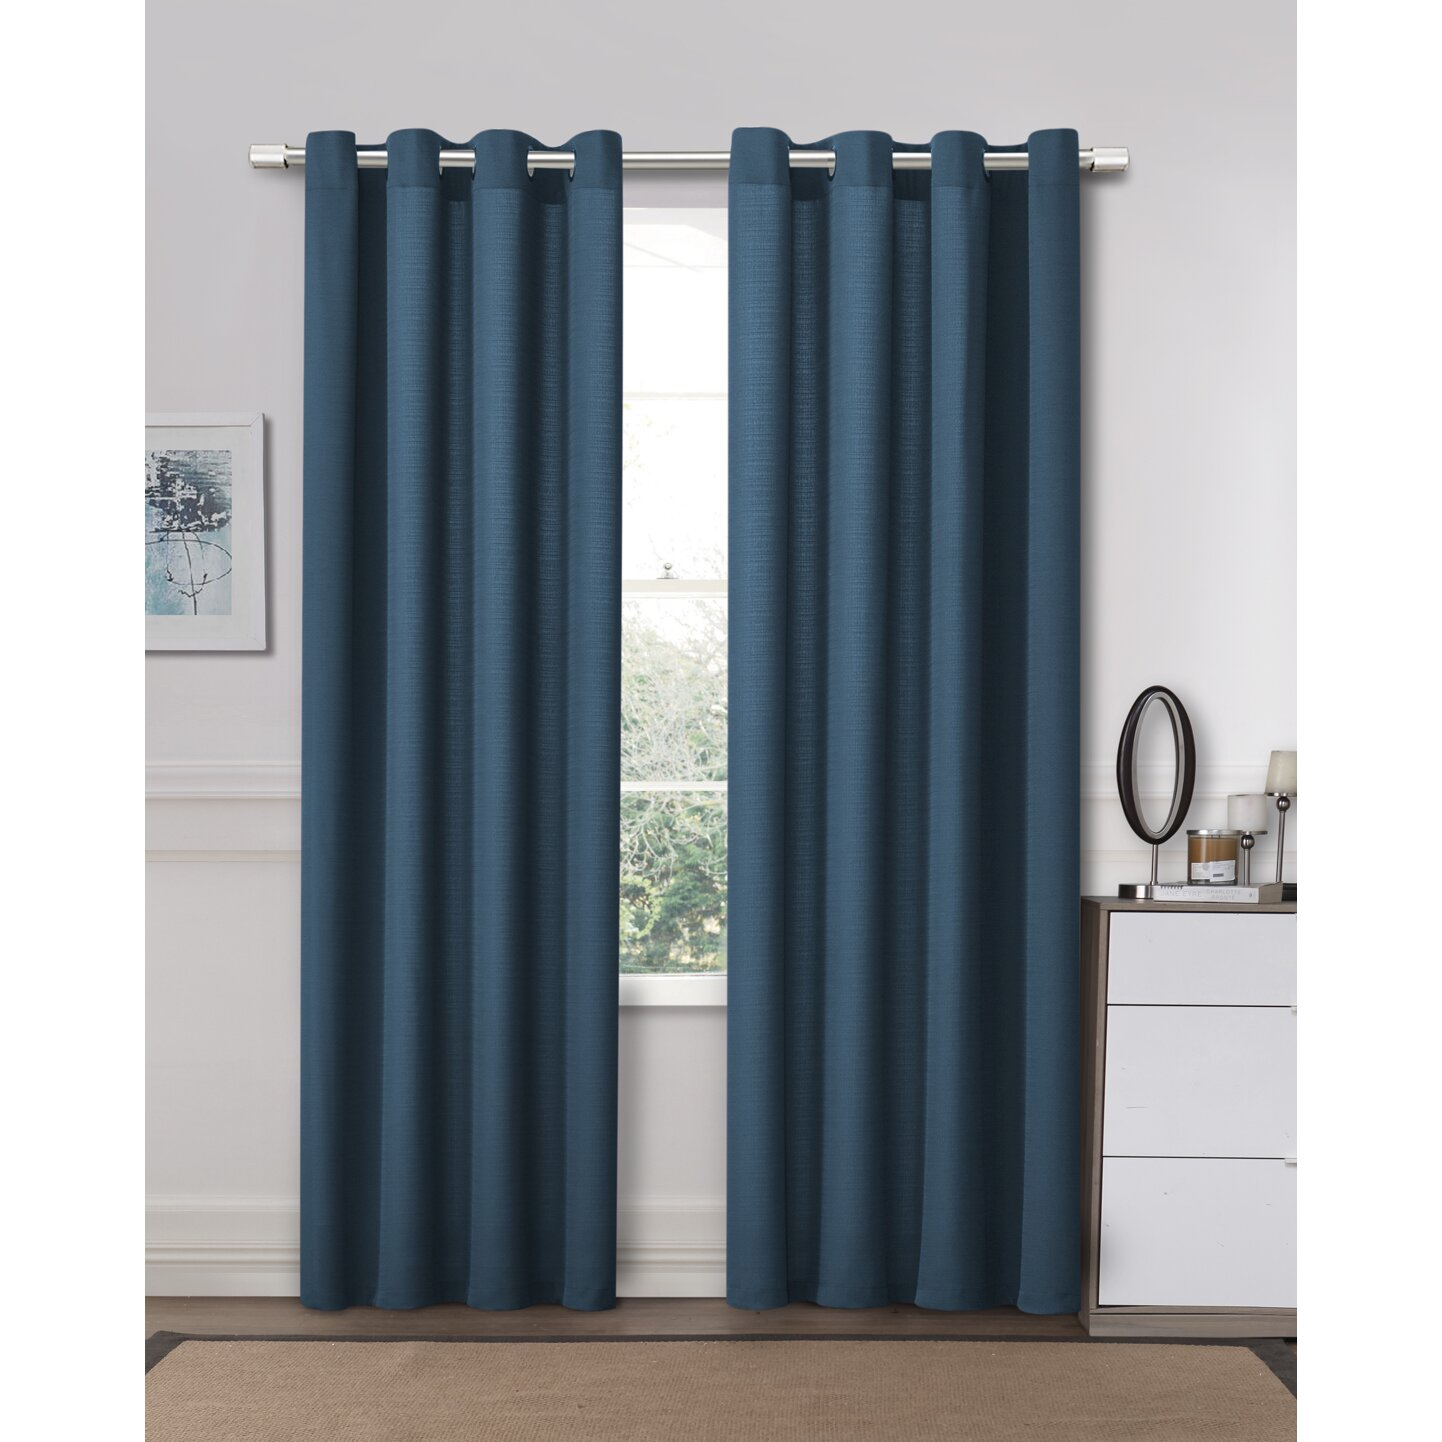 Ruthys Outlet Curtain Panels Wayfair : Curtain Panel VICLUNASLD2PC from www.wayfair.com size 1442 x 1442 jpeg 263kB